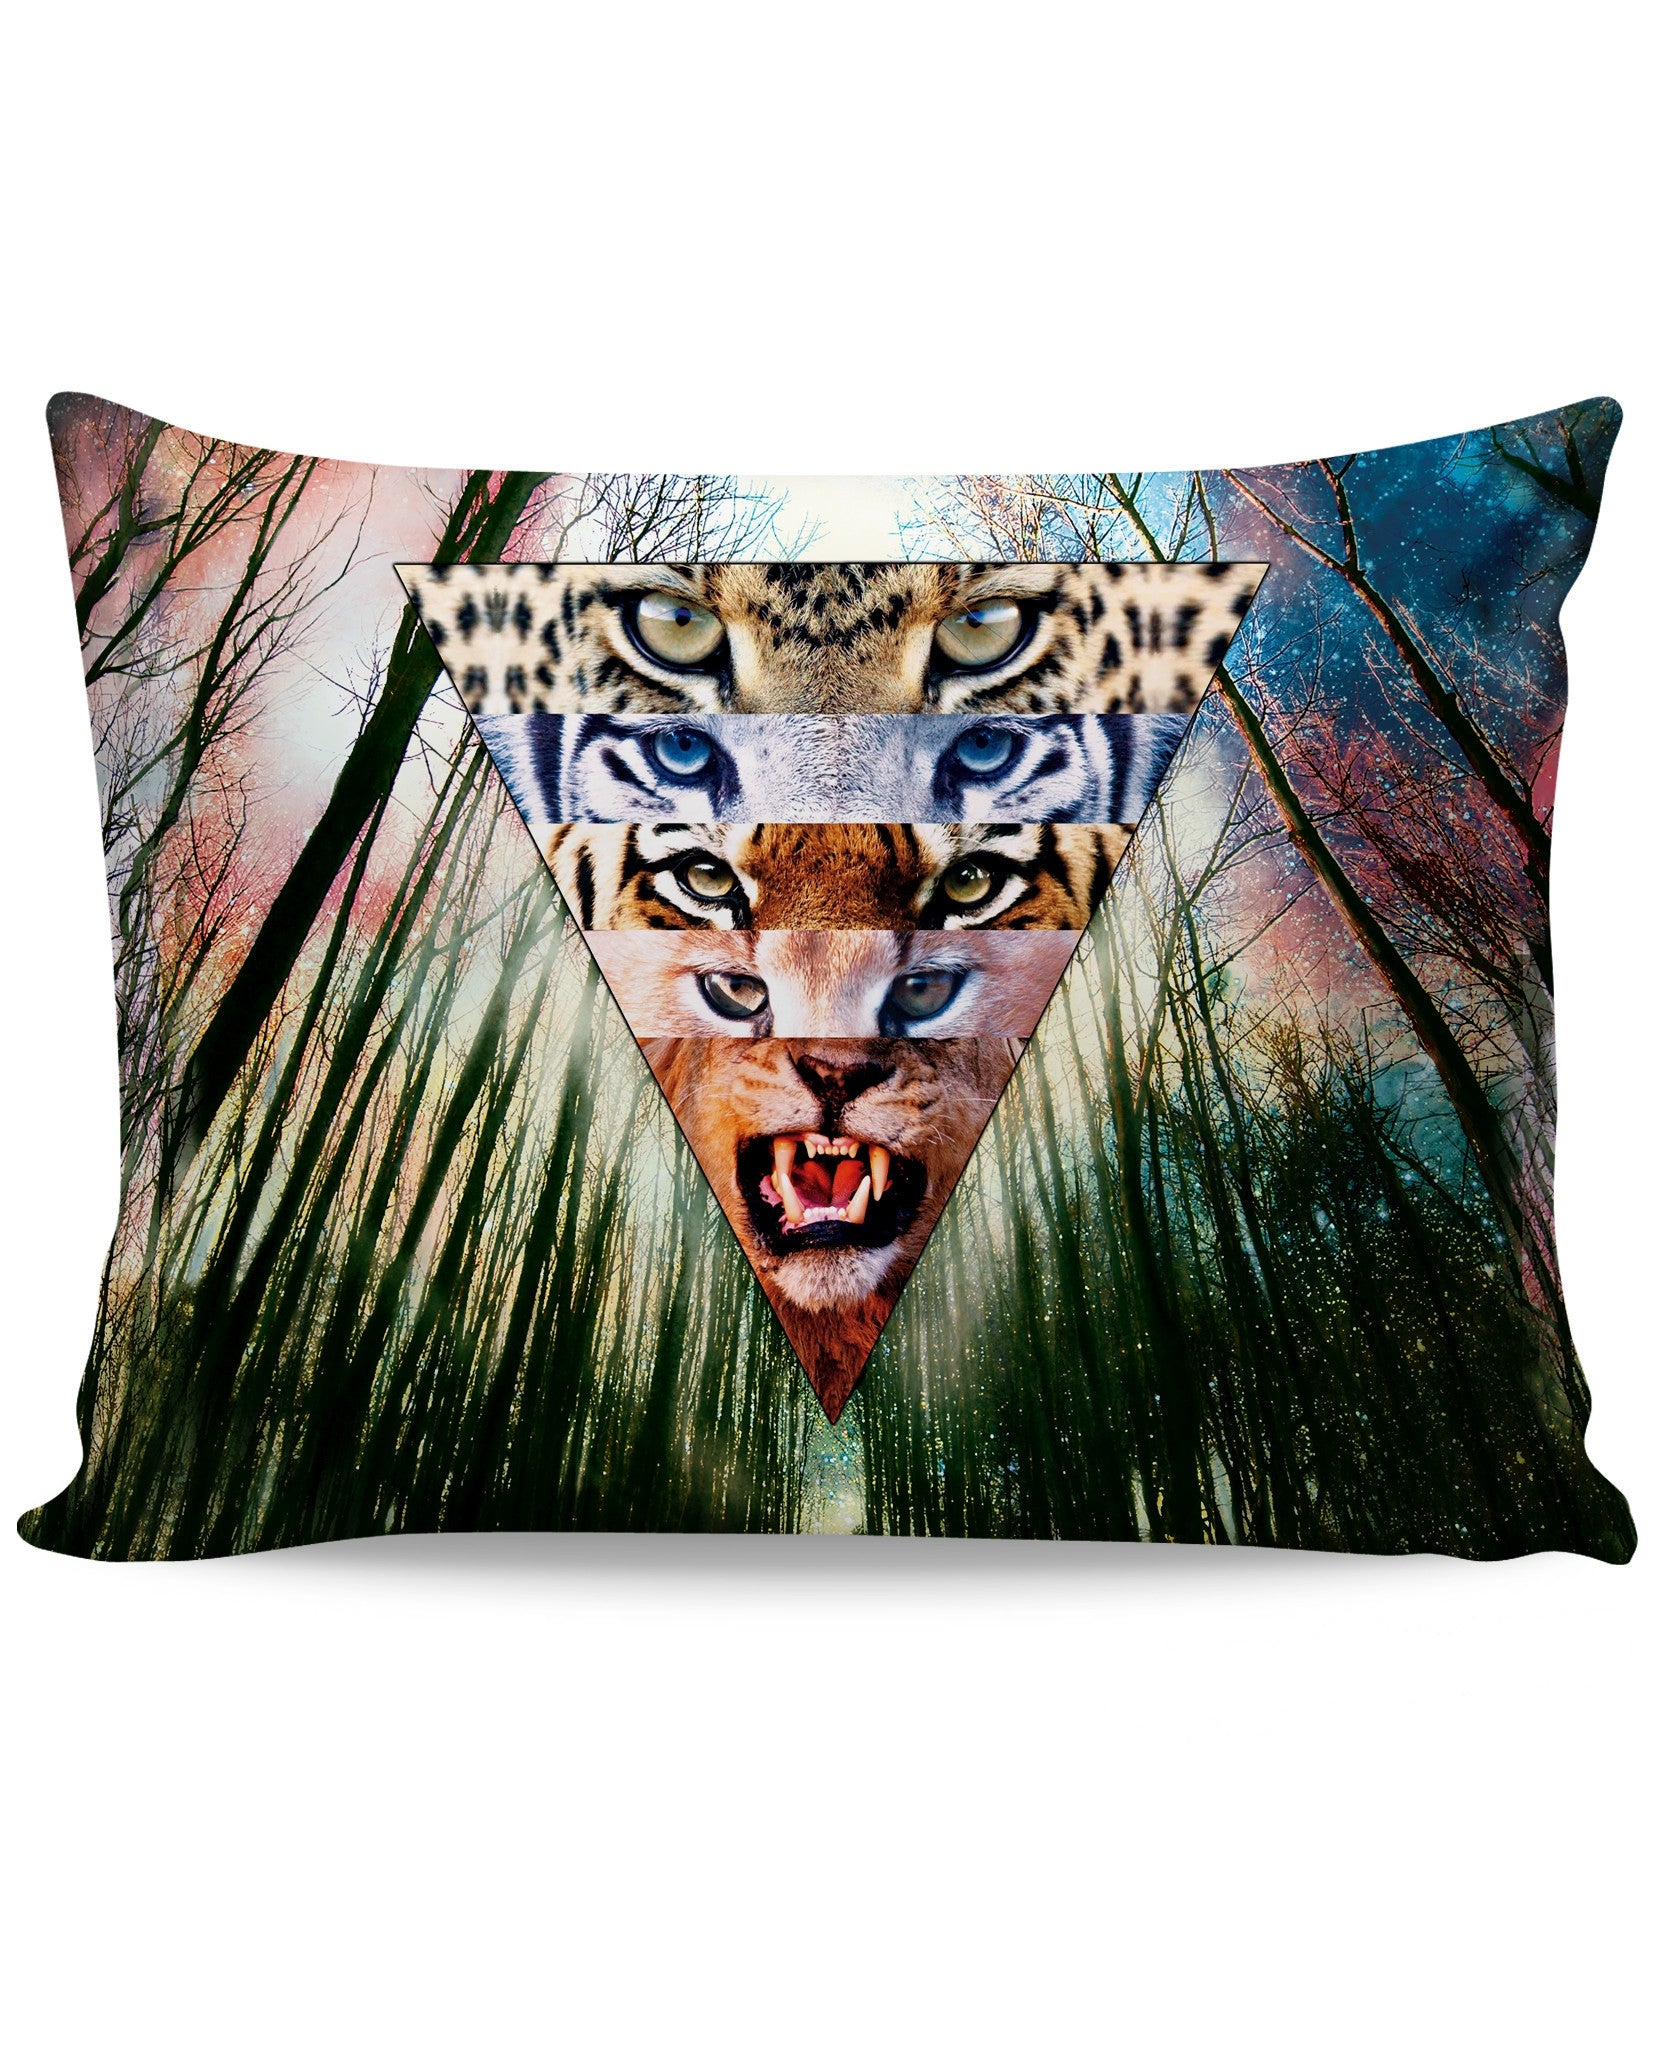 Wild Cats Pillow Case